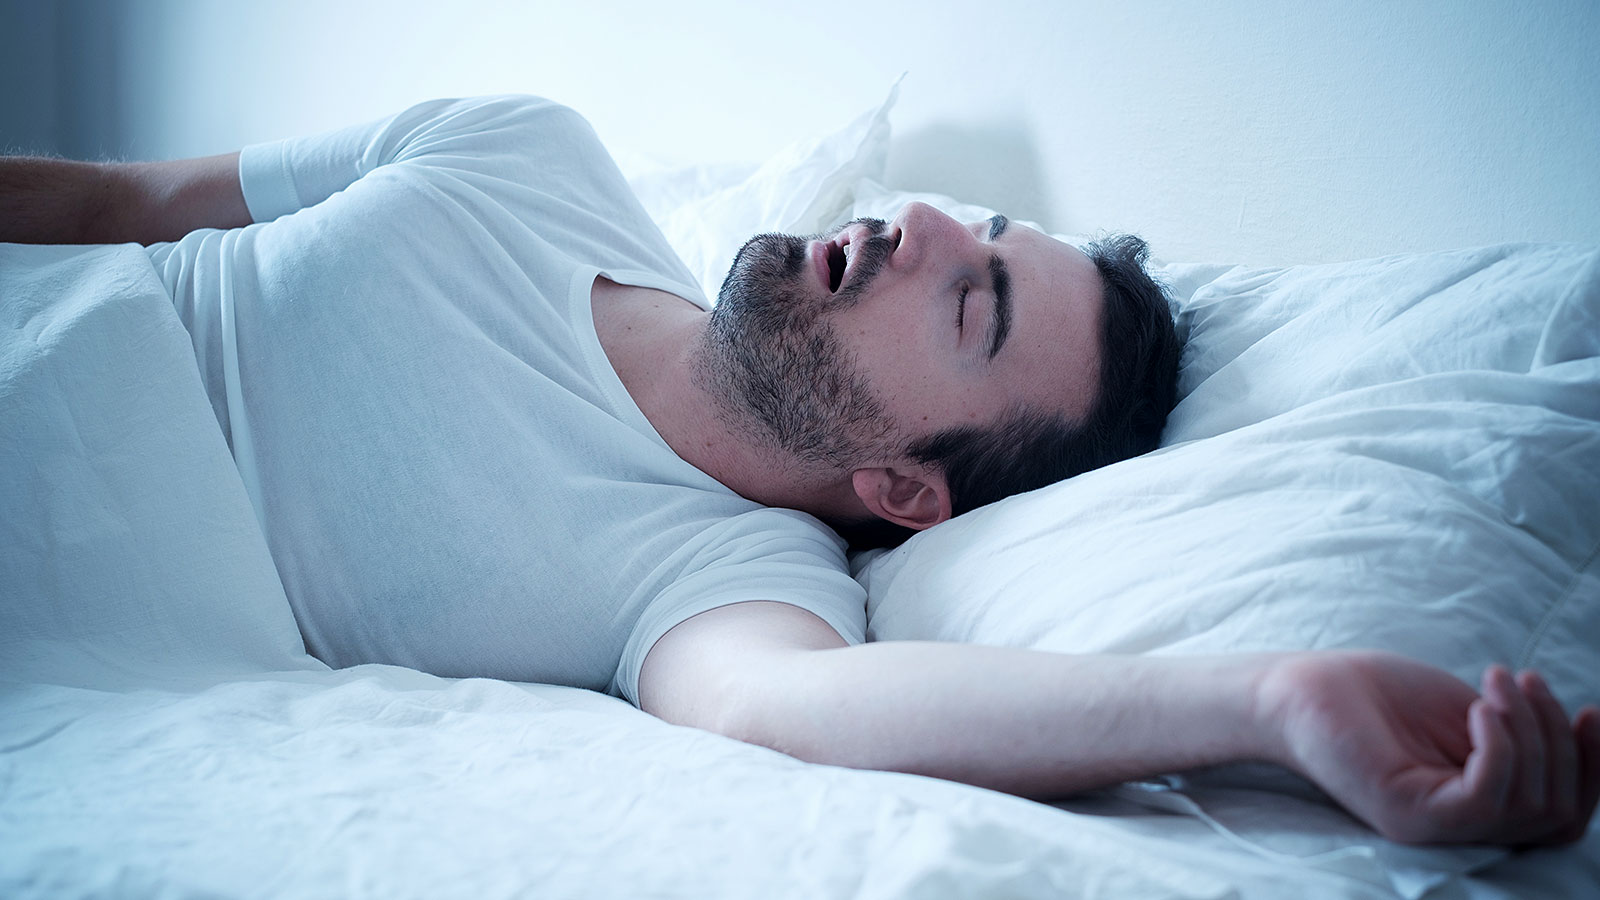 Data finds that getting 7 hours of sleep or less can be linked to these nutrition problems